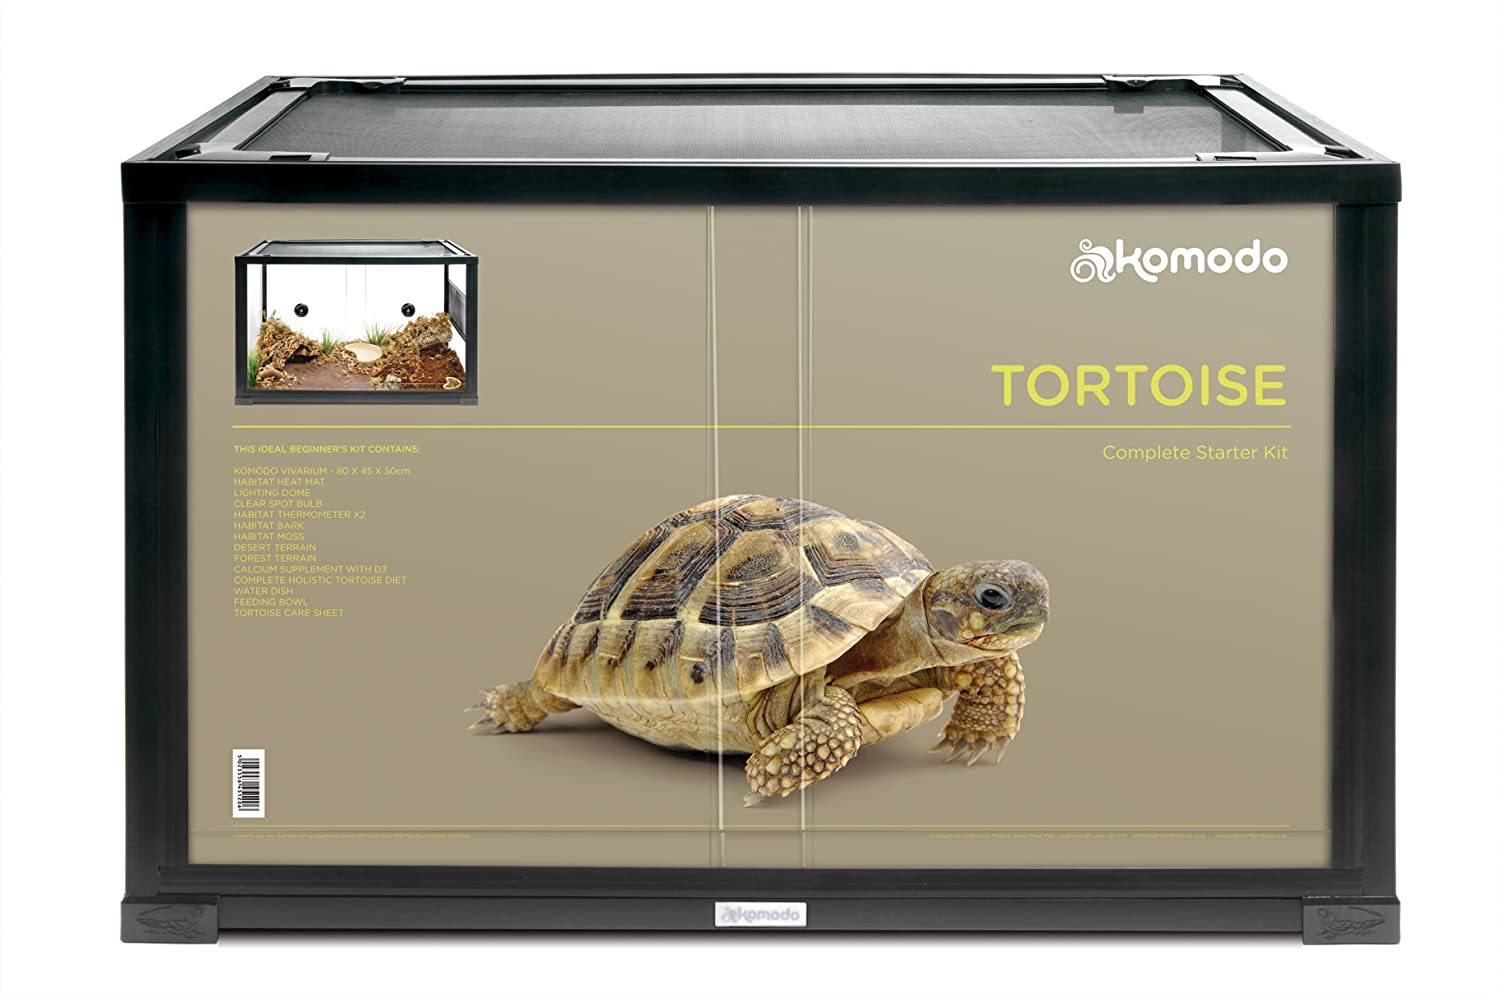 Tortoise table species specific products vivexotic vivariums - Tortoise Table Species Specific Products Vivexotic Vivariums 54